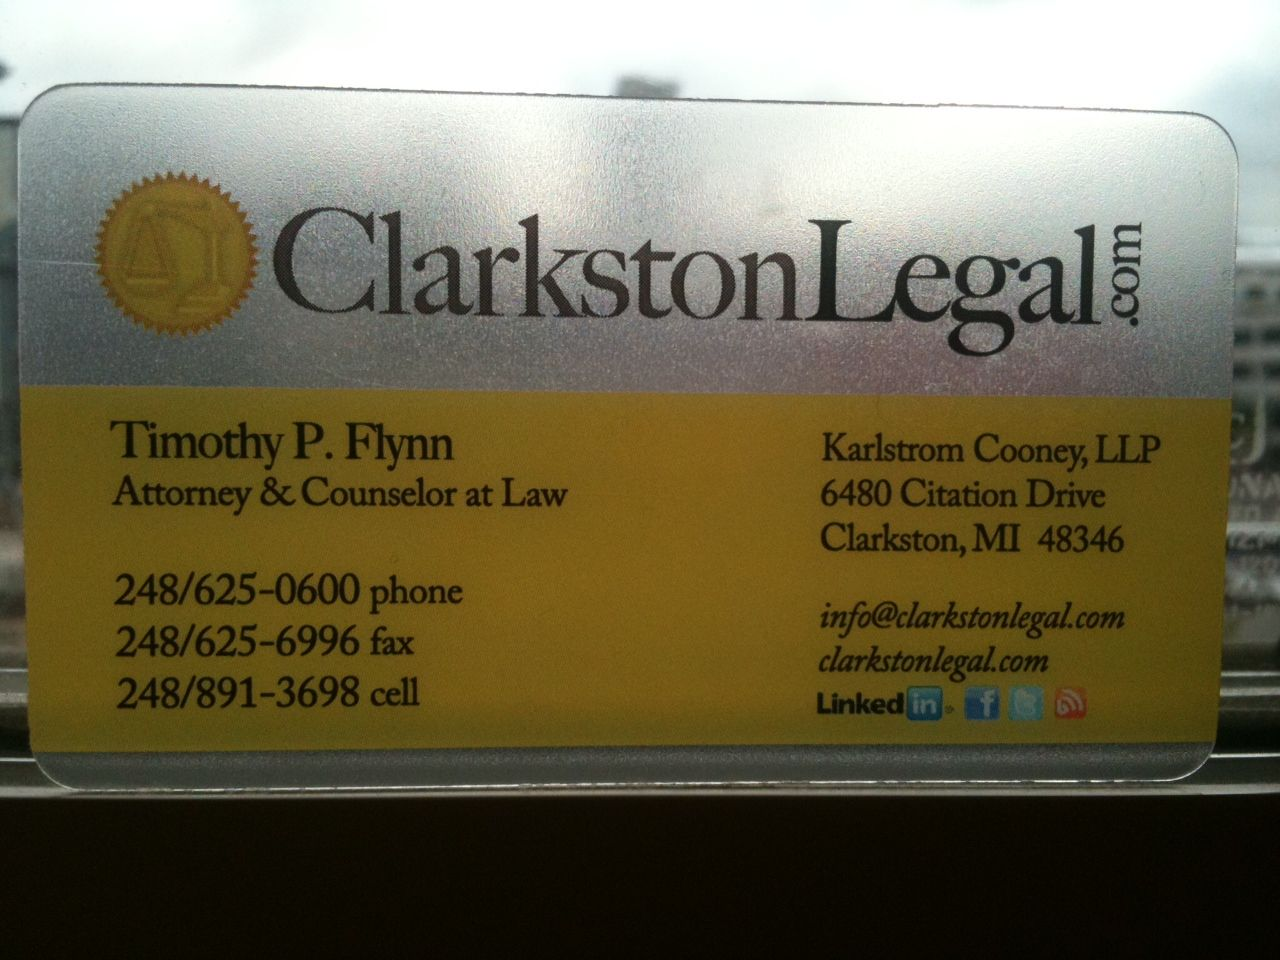 Transparent Business Card- clarkstonlegal.com | The Lawyer ...